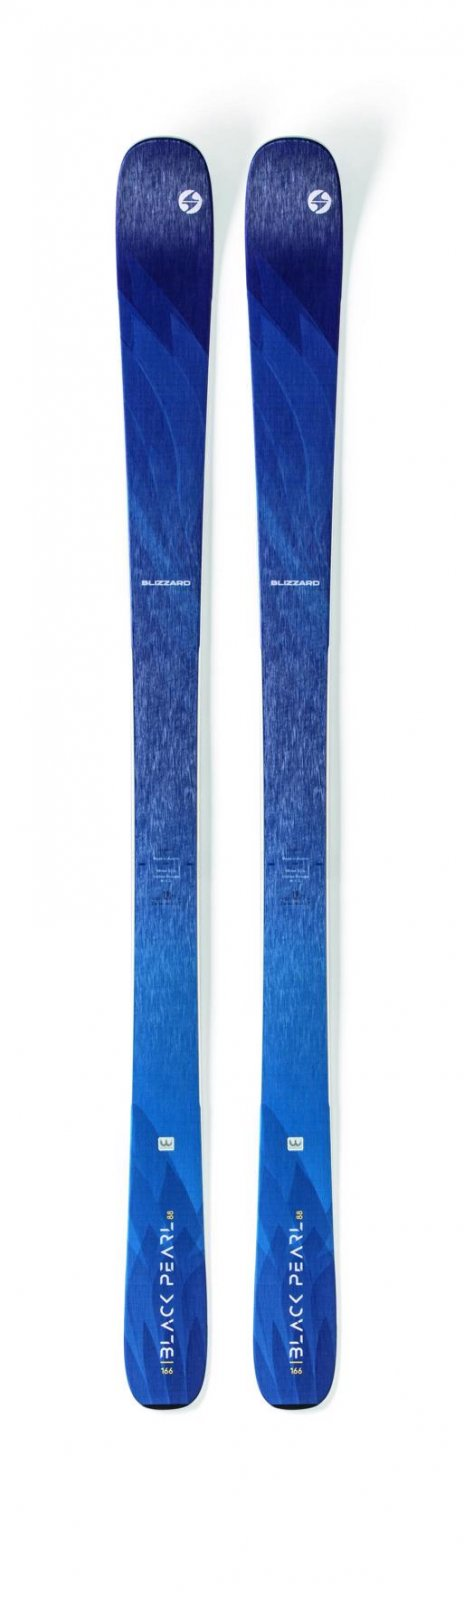 Blizzard Black Pearl 88 Skis 2020